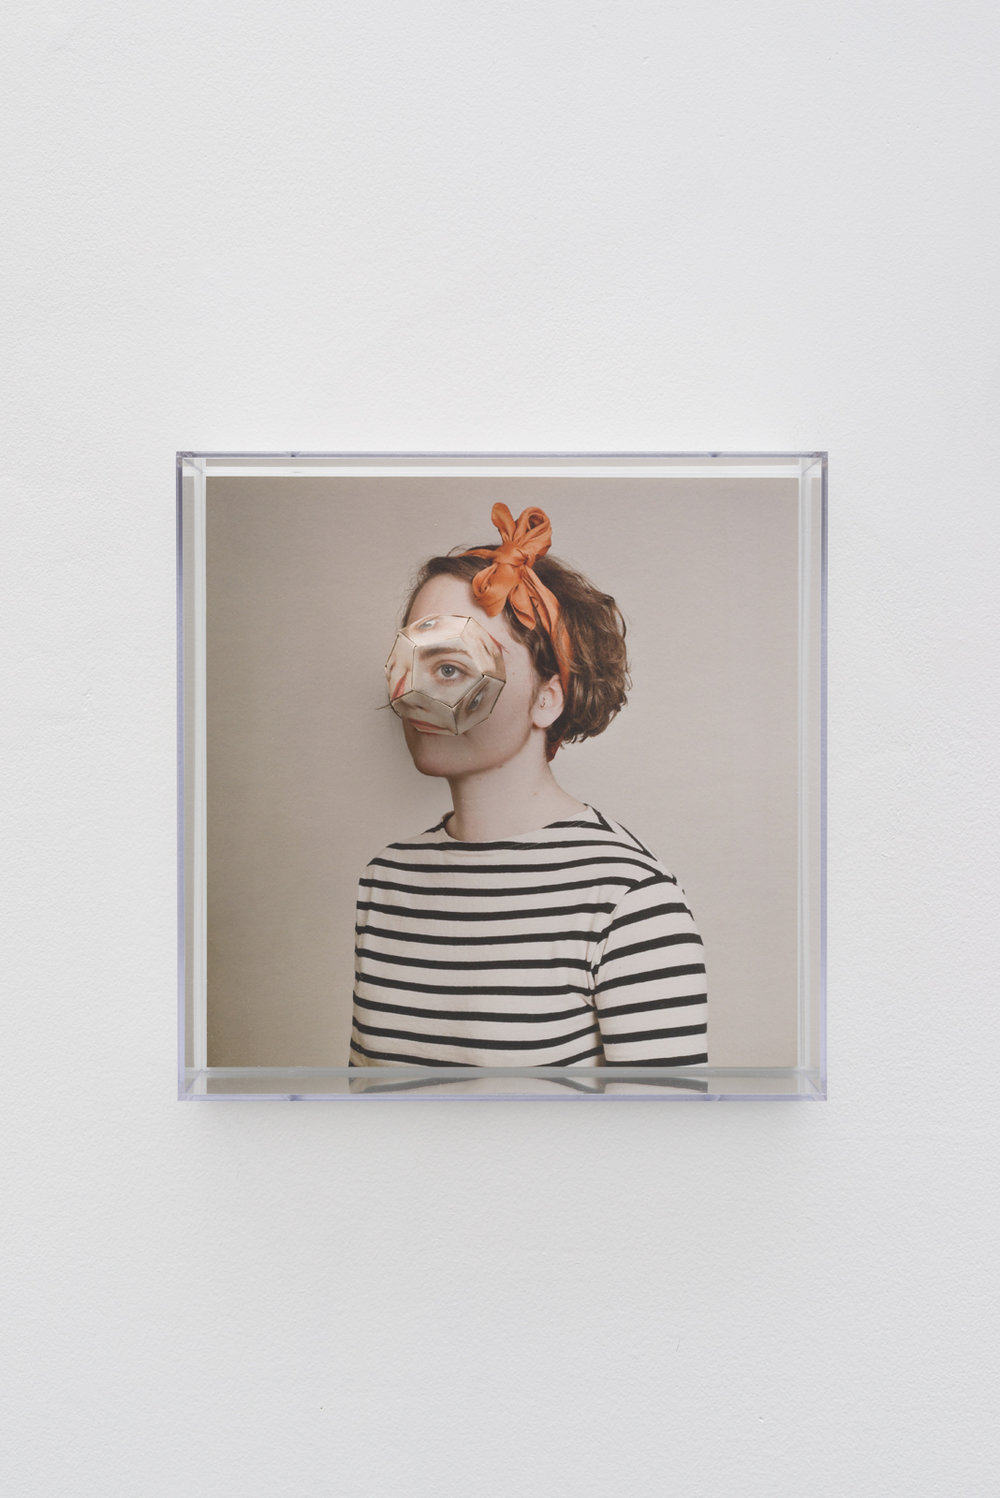 Alma Haser,  Patient No. 1 HD (Lottie) , 2016  Digital pigment print with folded digital pigment print sculpture, 30 x 30 x 10 cm (approx. 12 x 12 x 4 in), AP1, $2600   Inquire